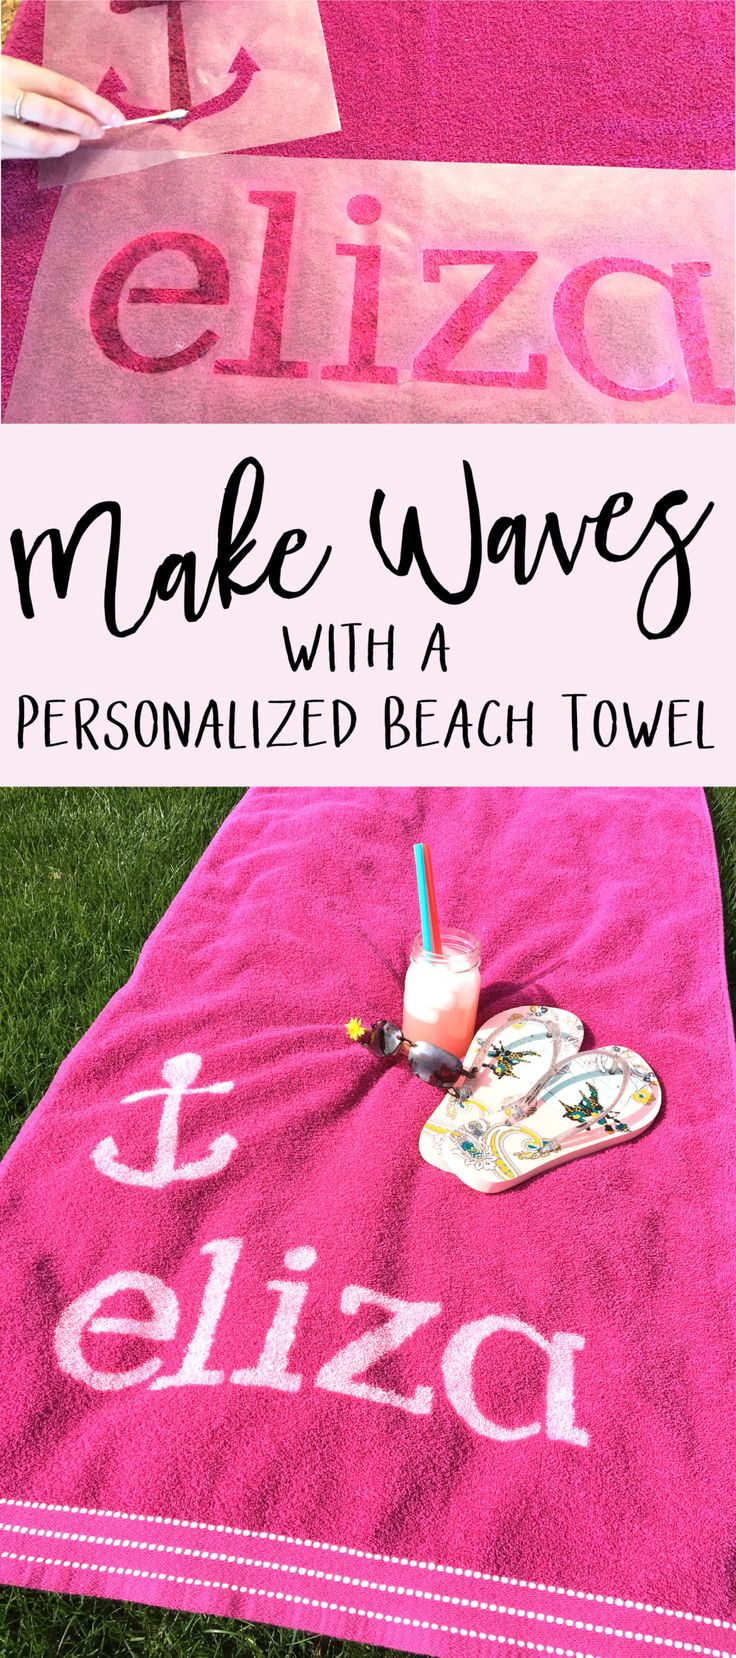 Make Waves With A Personalized Beach Towel – Silhouette America Blog